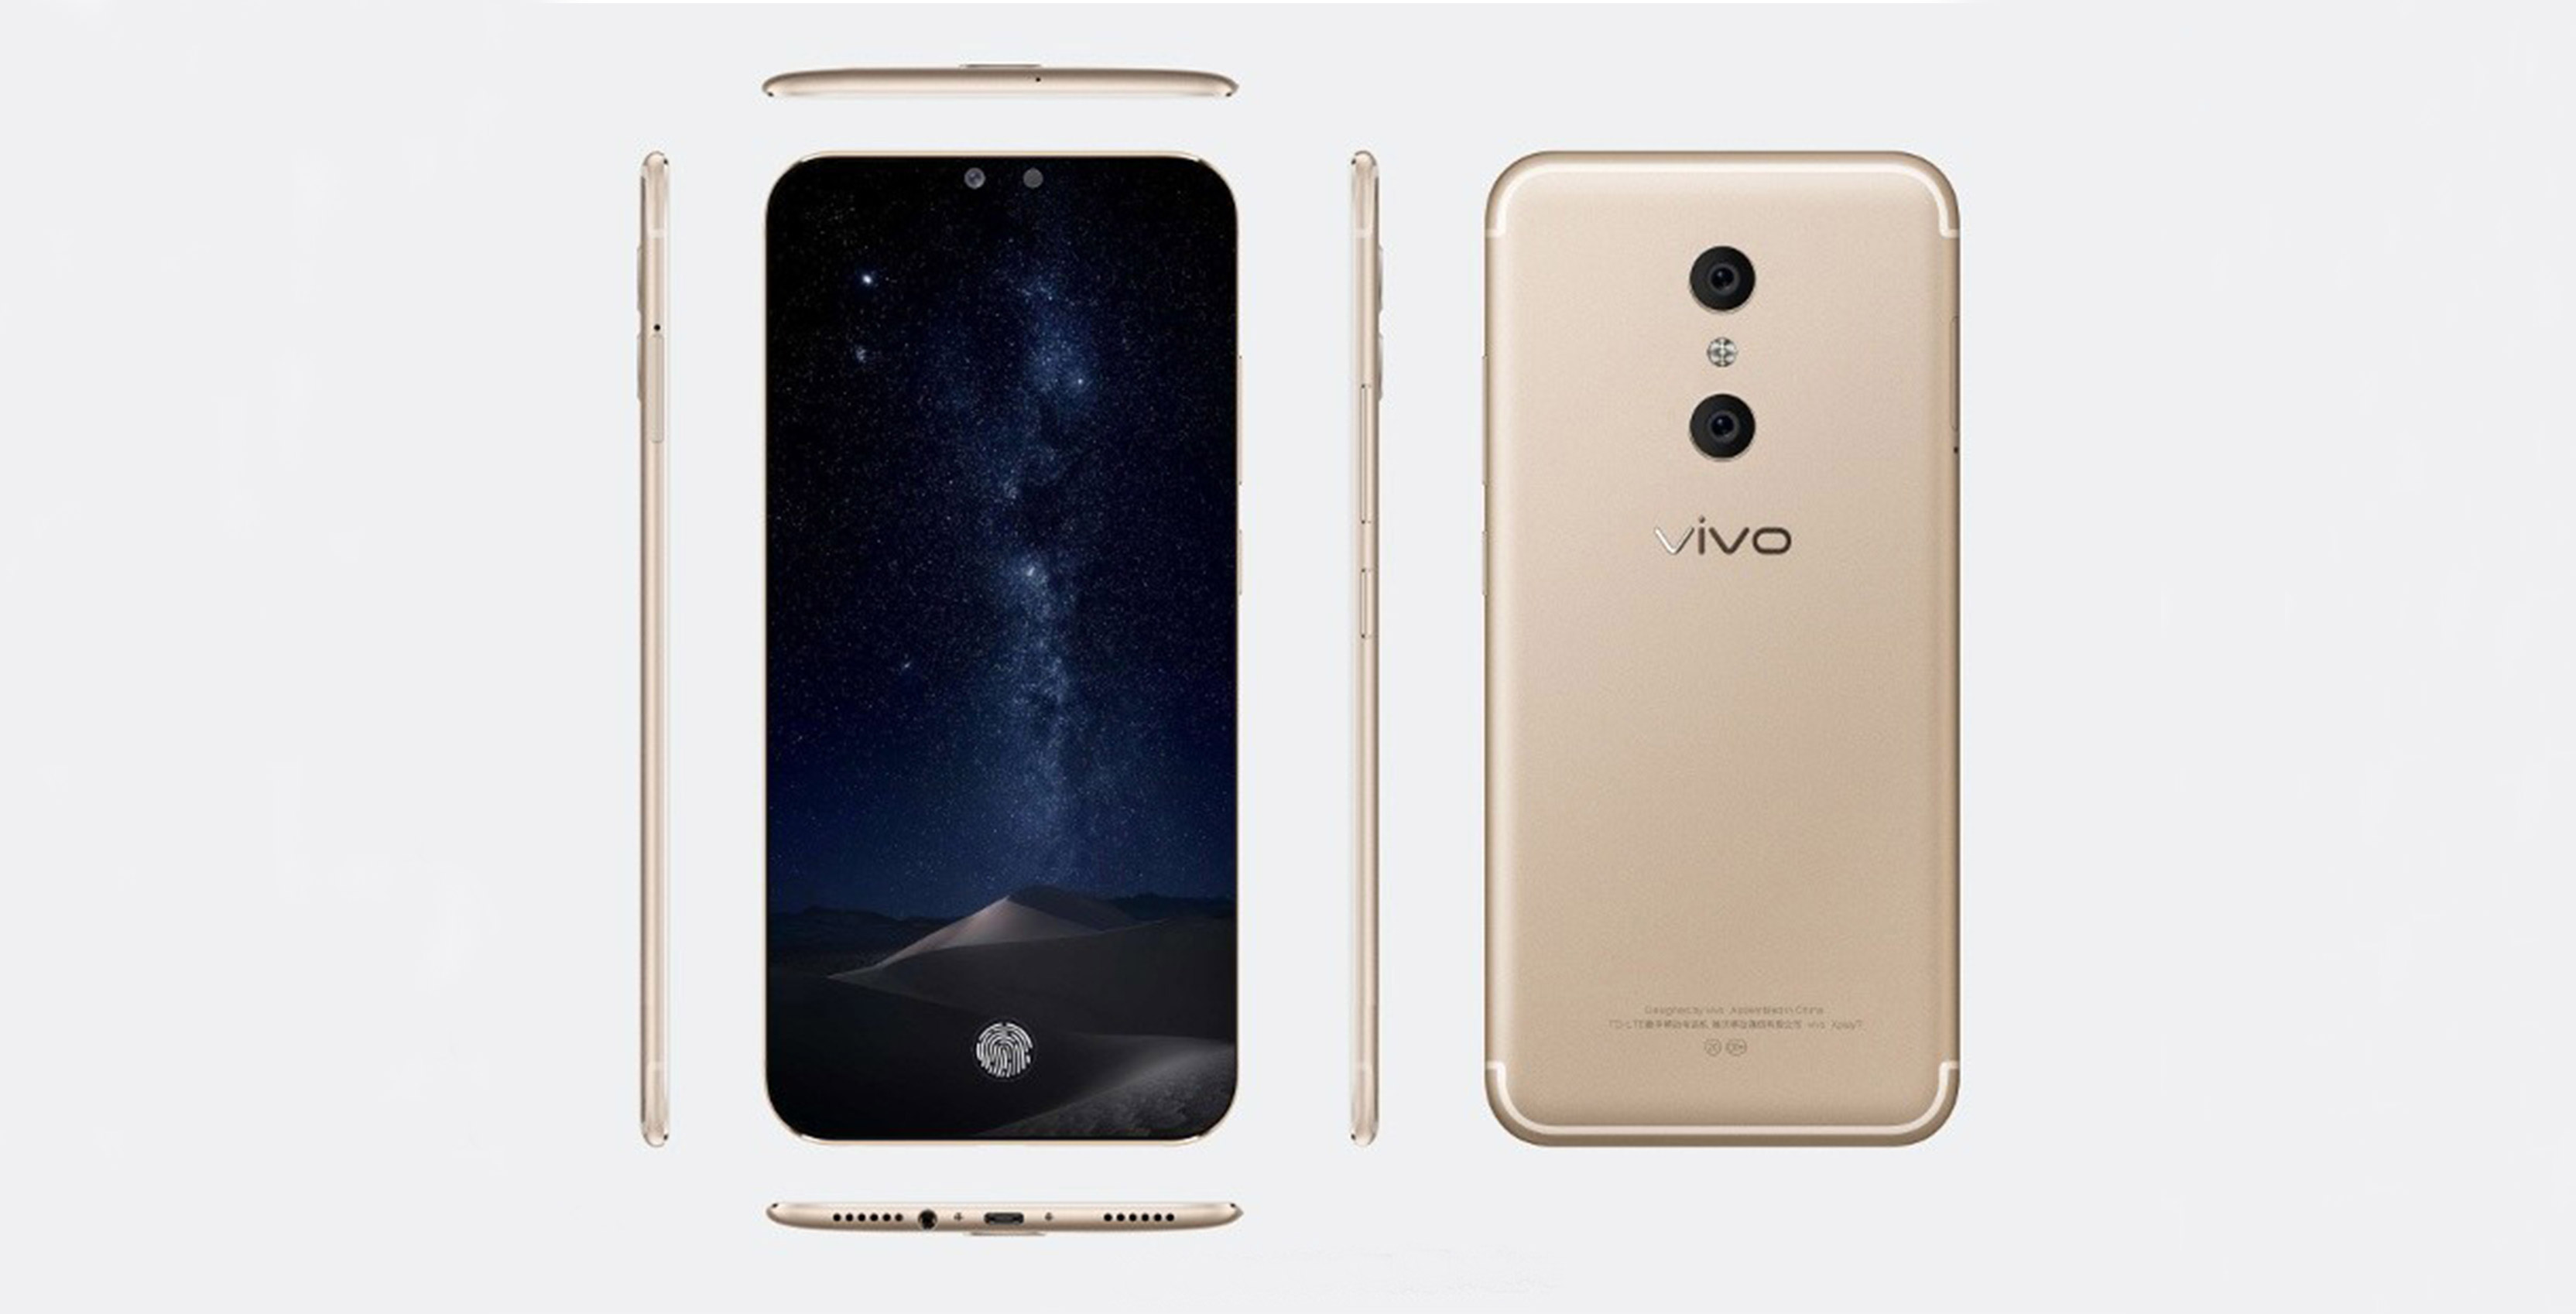 Vivo's upcoming Xplay 7 smartphone